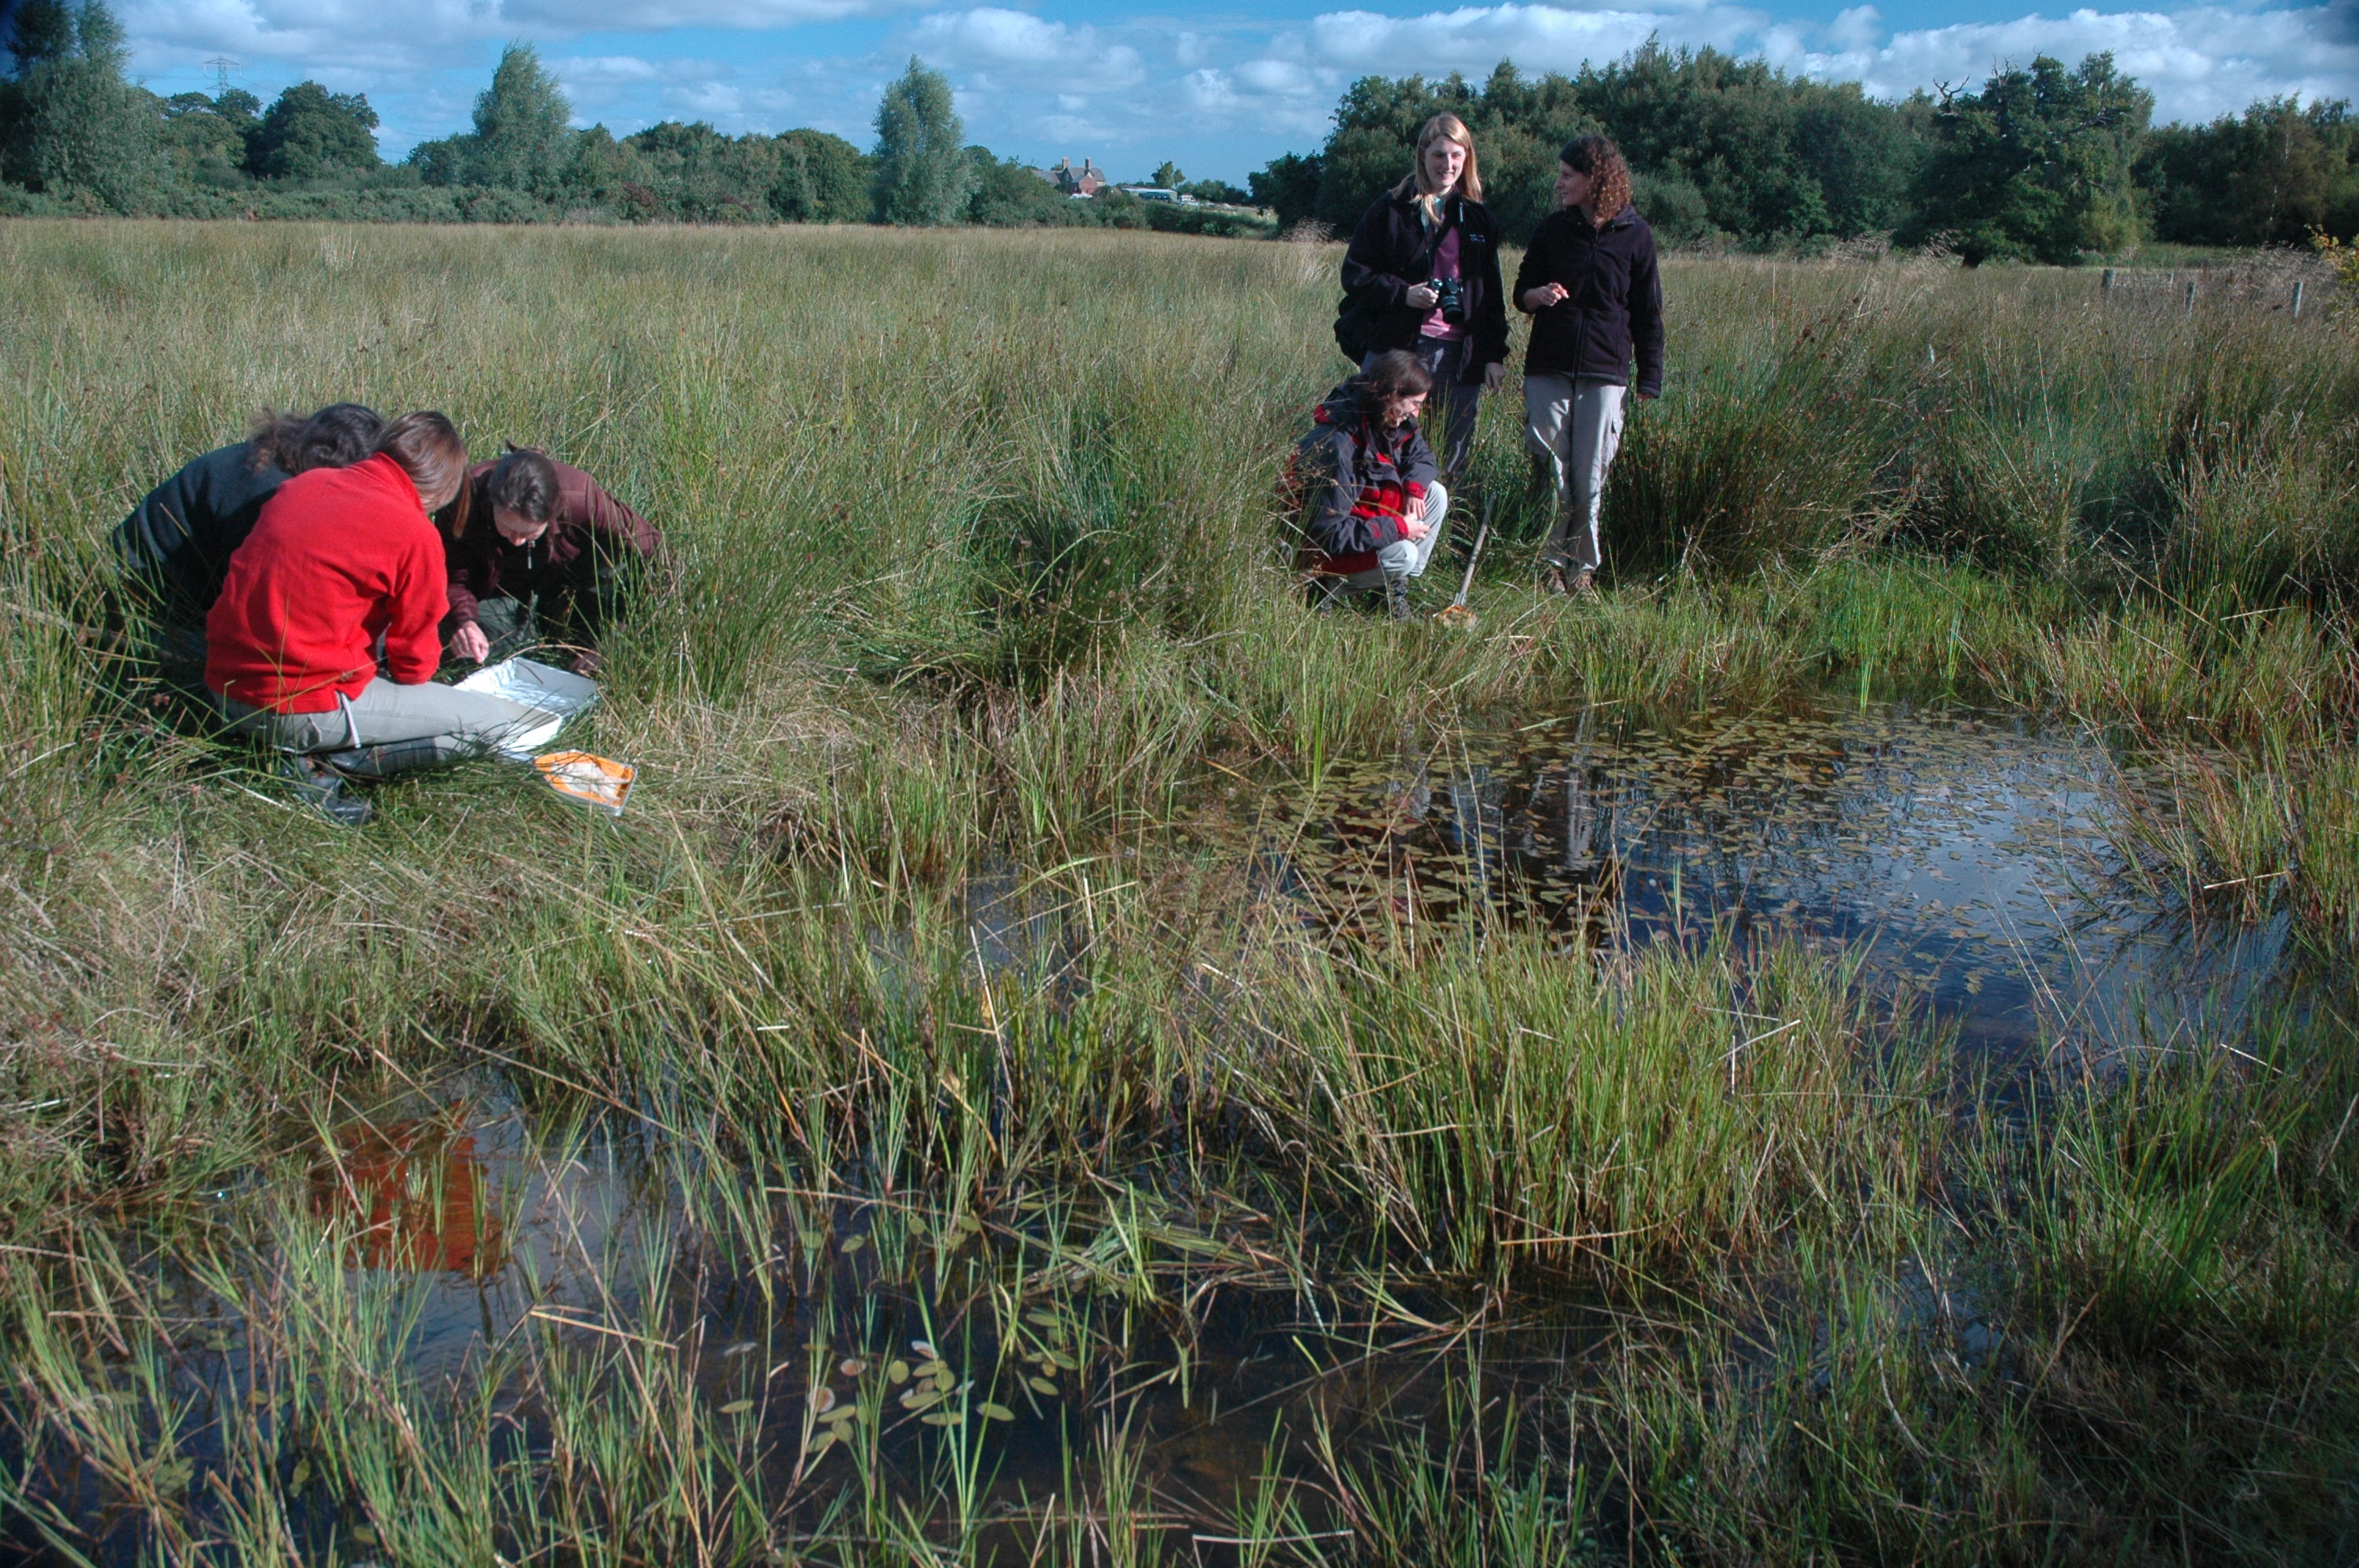 6_New pond in North Wales to encourage Great Crested Newts